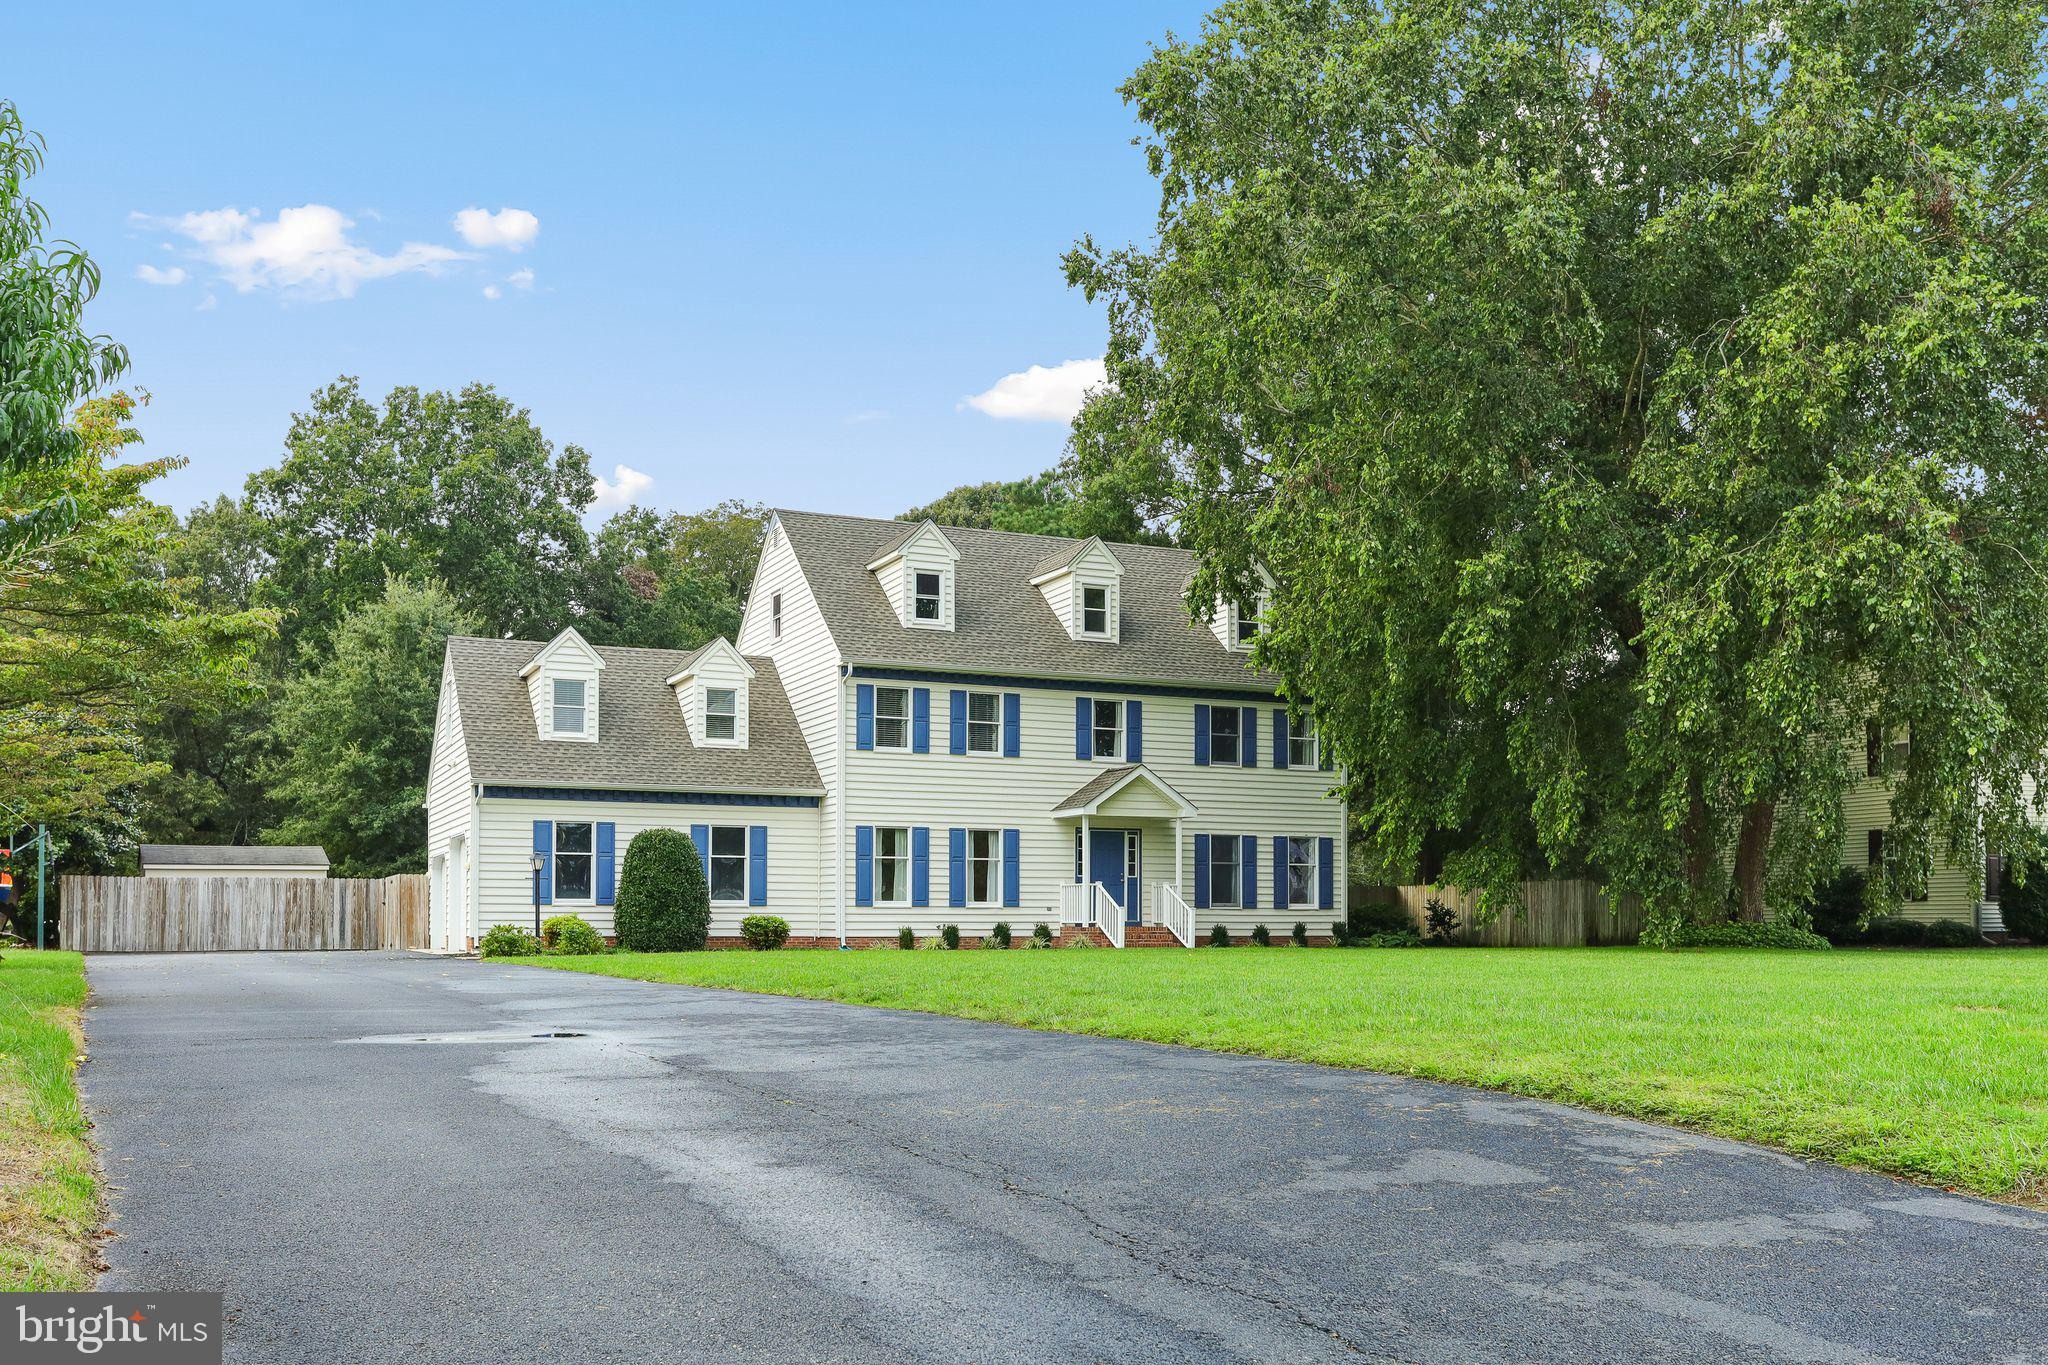 5608 Clydesdale Dr, Salisbury, MD, 21801